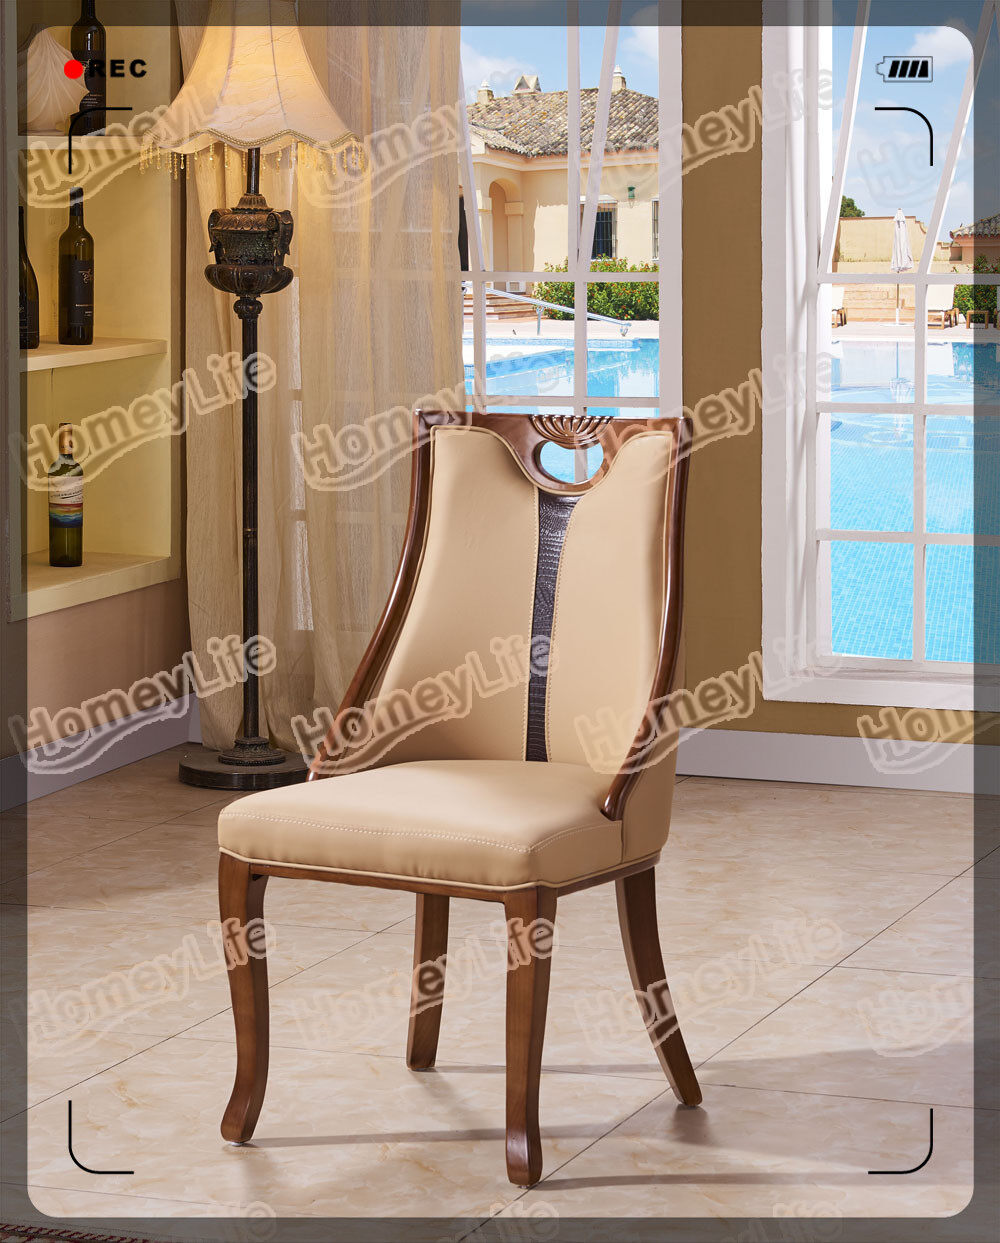 solid wood frame with PU leather cushion dining chair